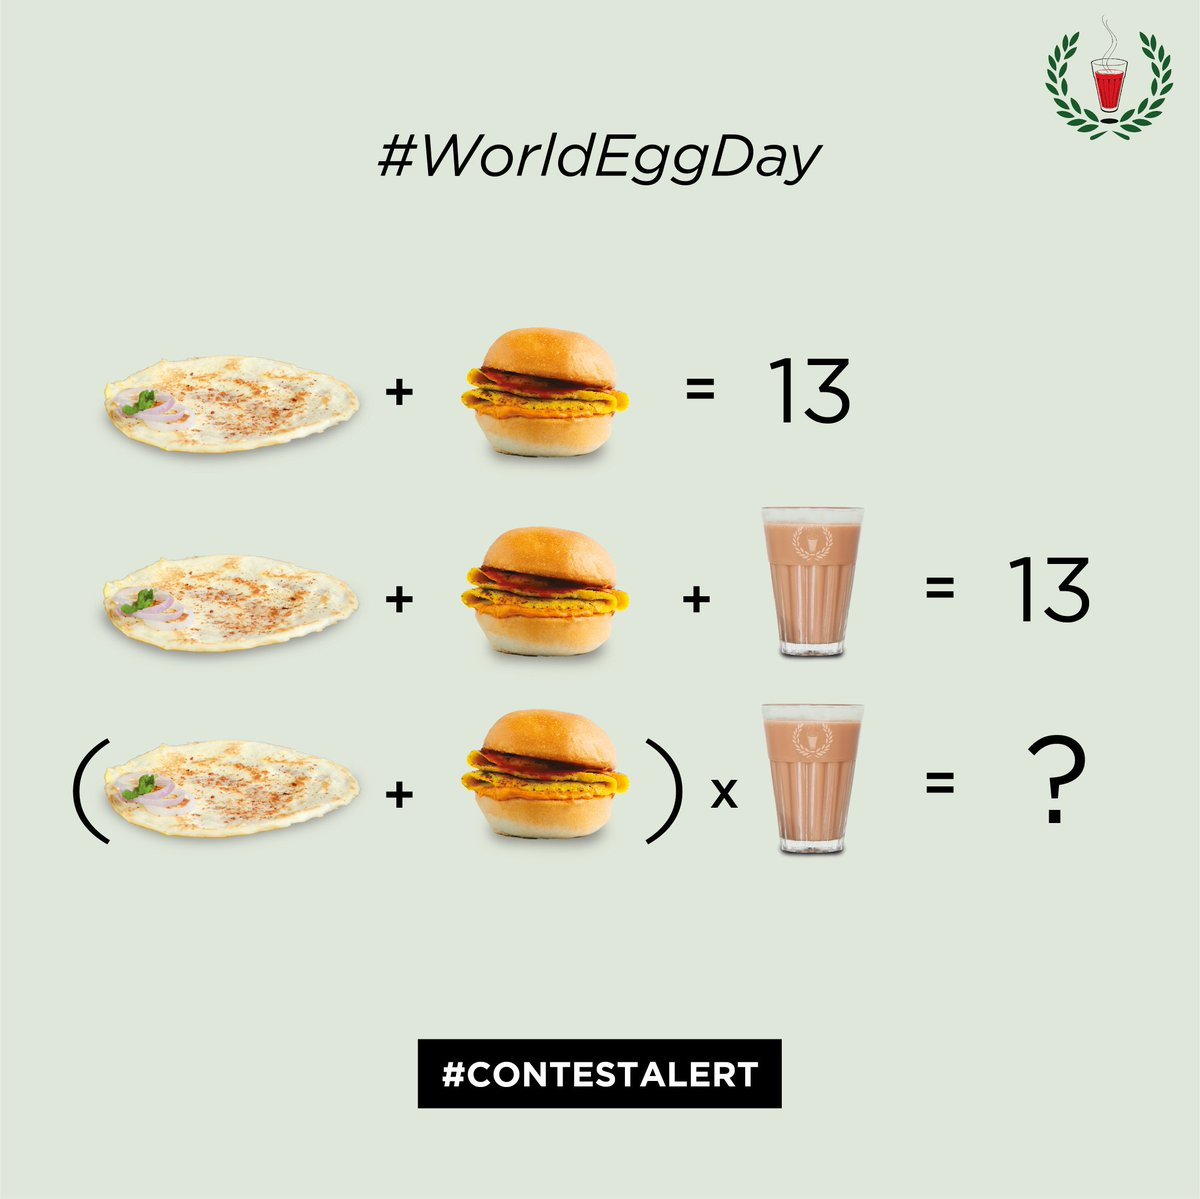 Scoring an anda isn't such a bad thing after all! Solve the equation to #win big this #WorldEggDay   Rules: 1) Follow us 2) Comment your answers 3) Like & RT 4) Tag 3 anda lovers for brownie points!  #contest #contesttime #ContestIndia #ContestofChampions #contests<br>http://pic.twitter.com/i8o2plfsS4